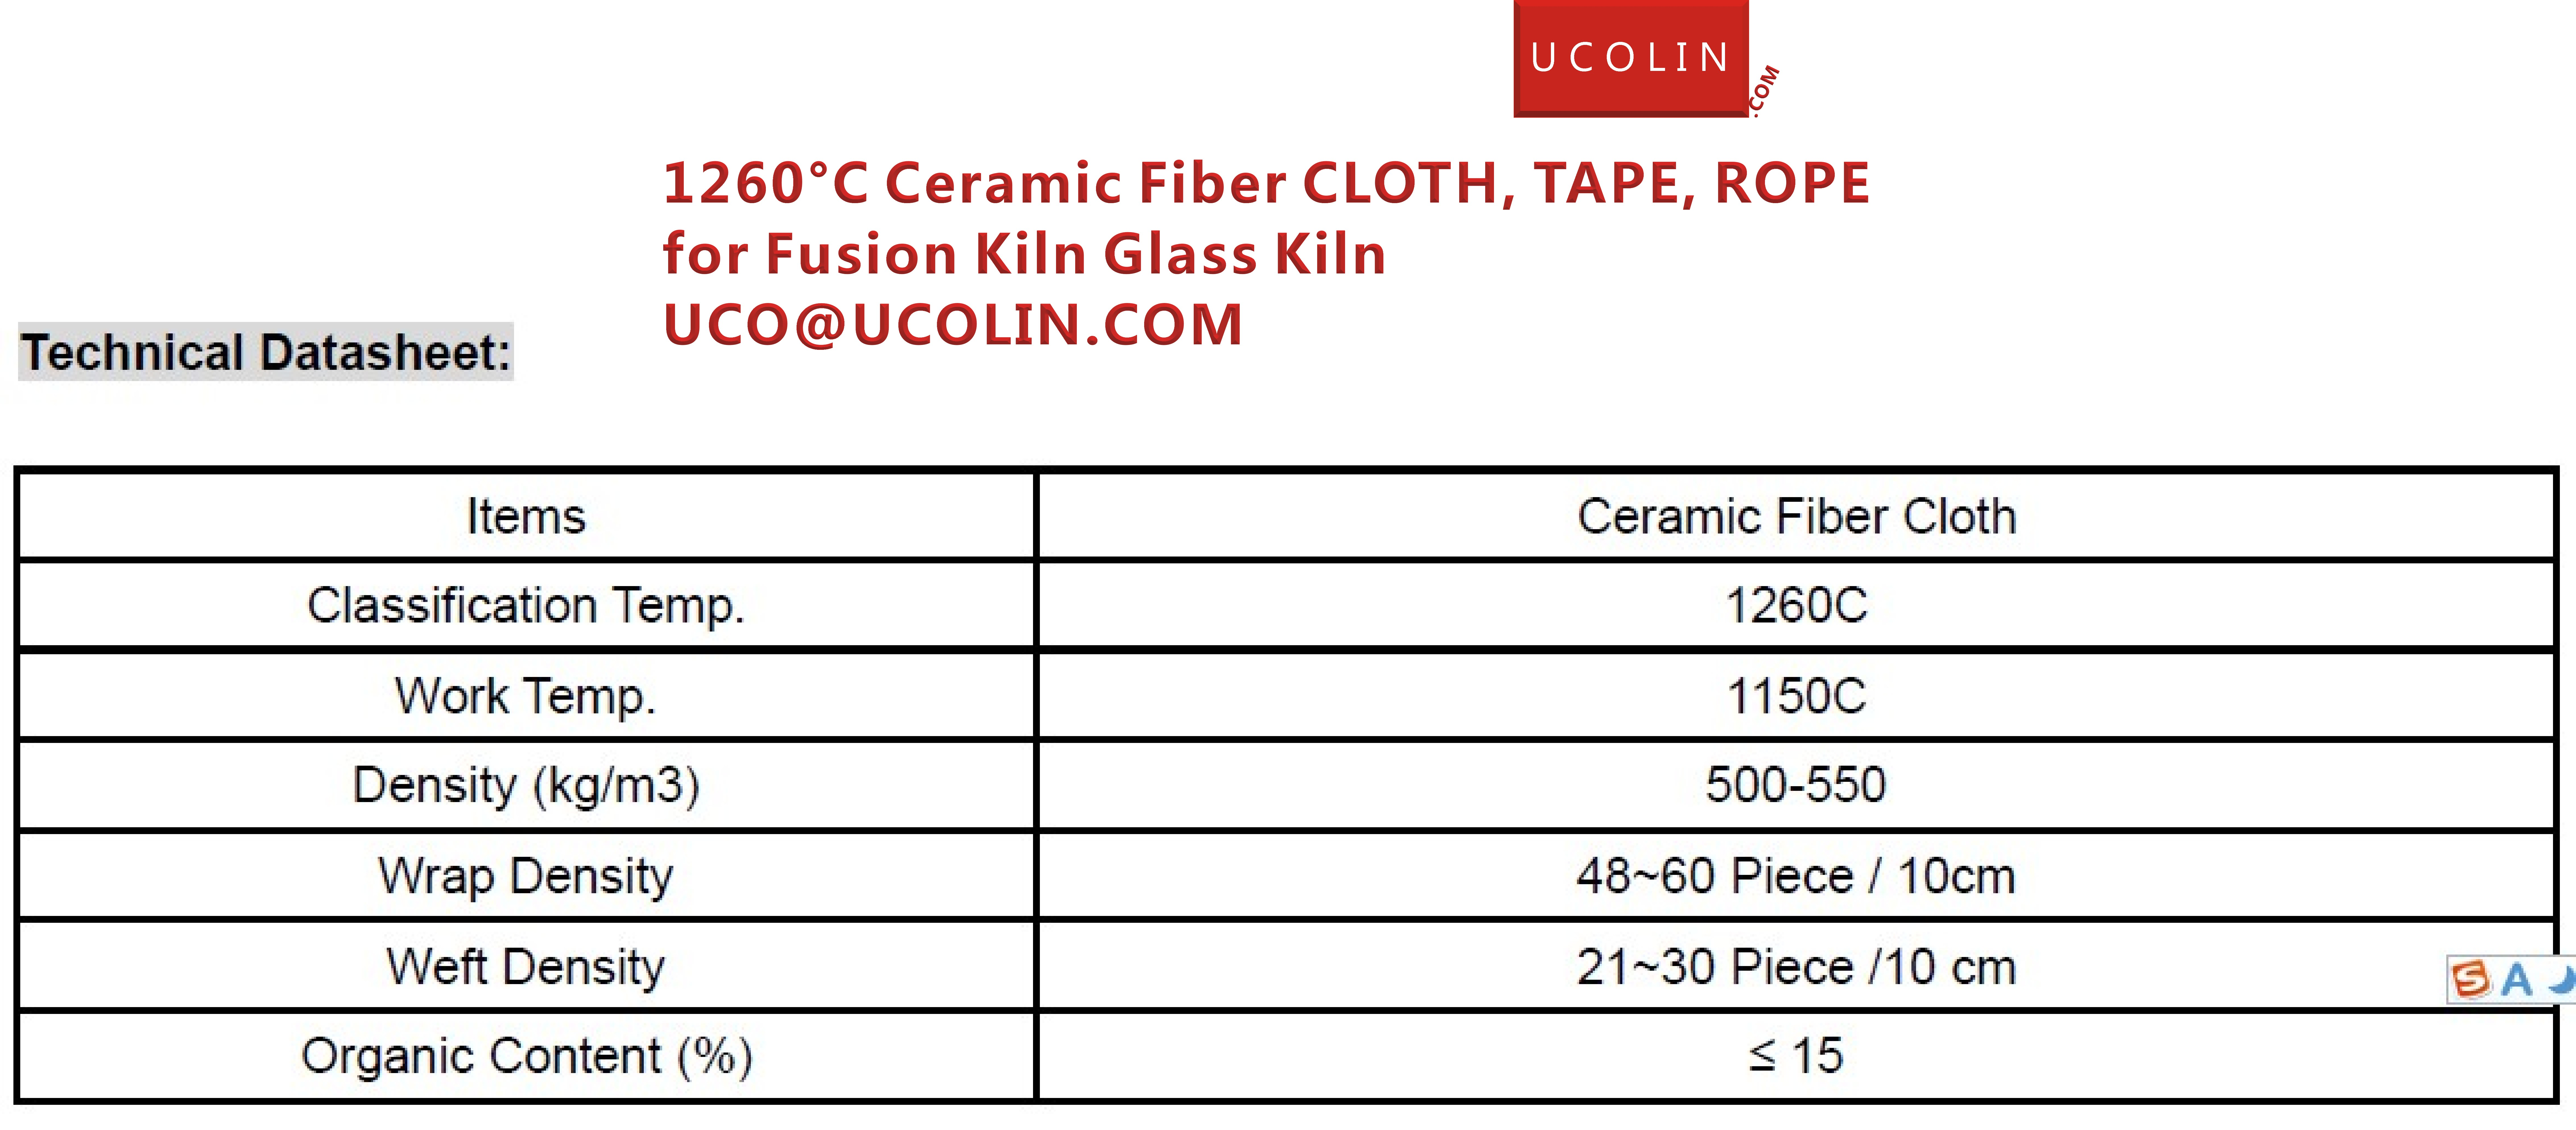 02  1260°C Ceramic Fiber CLOTH, TAPE, ROPE for Fusion Kiln Glass Kiln